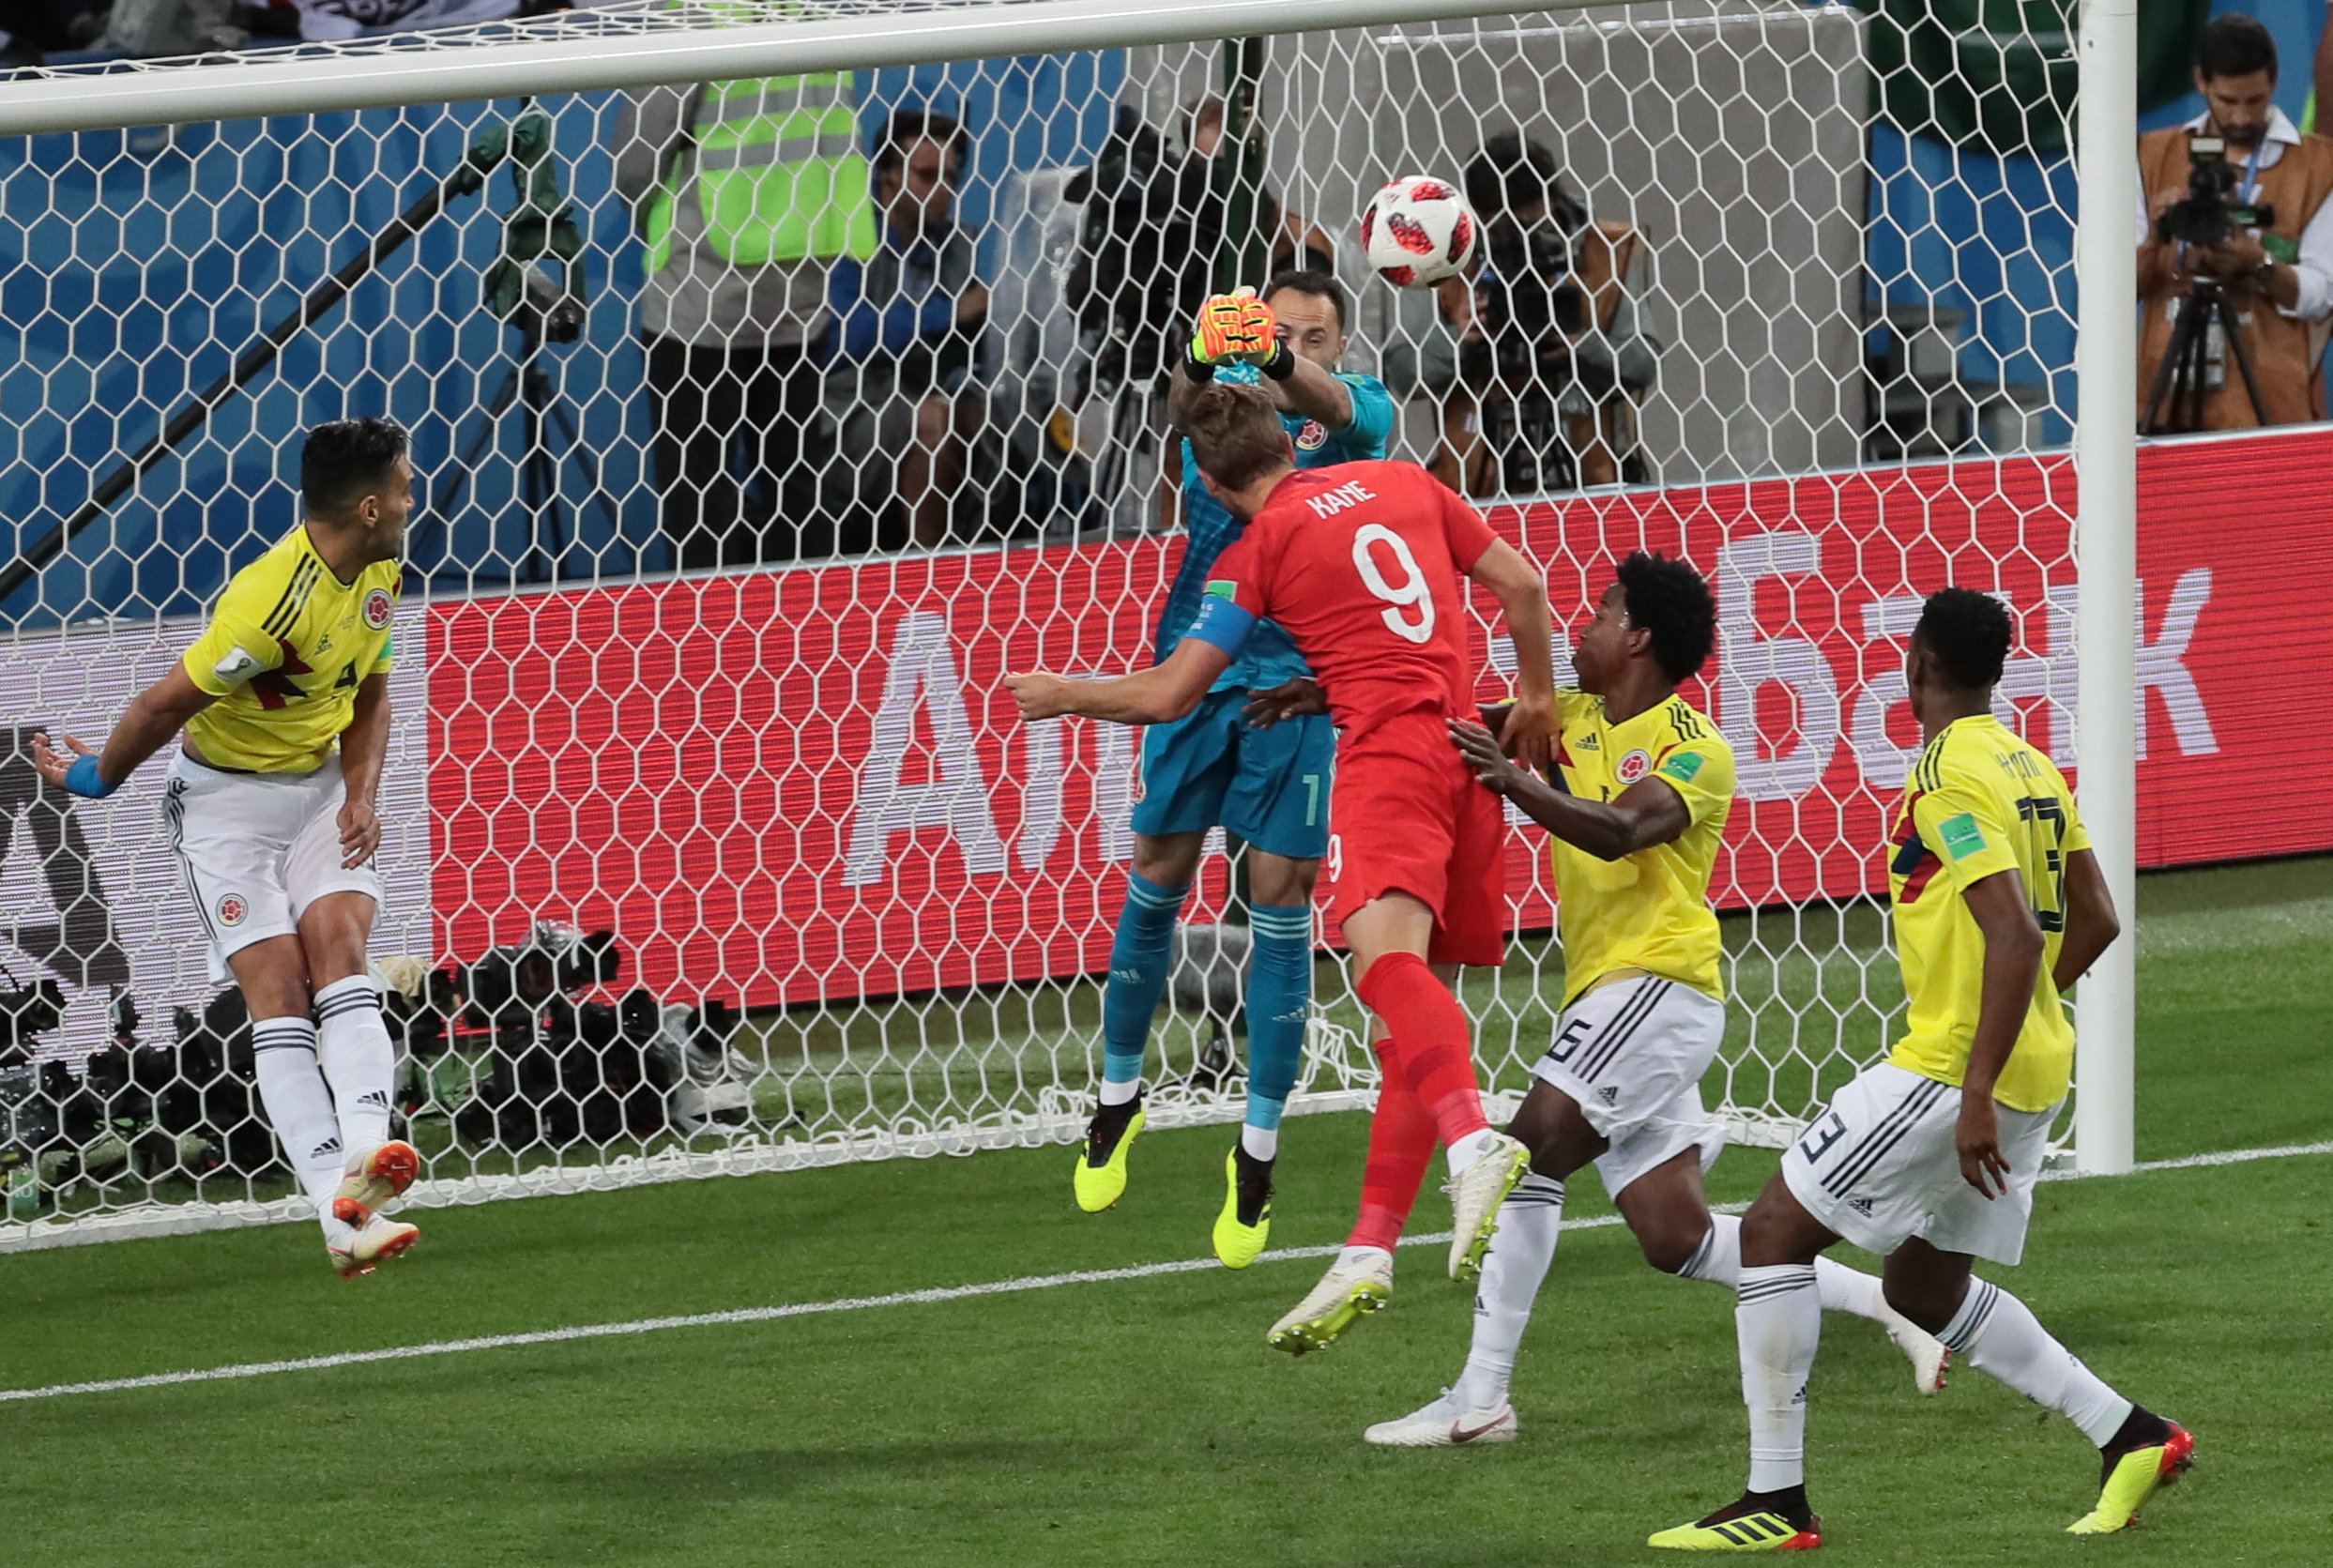 FIFA World Cup 2018, Round of 16, Colombia - England, July 3, Spartak Otkritie Arena in Moscow